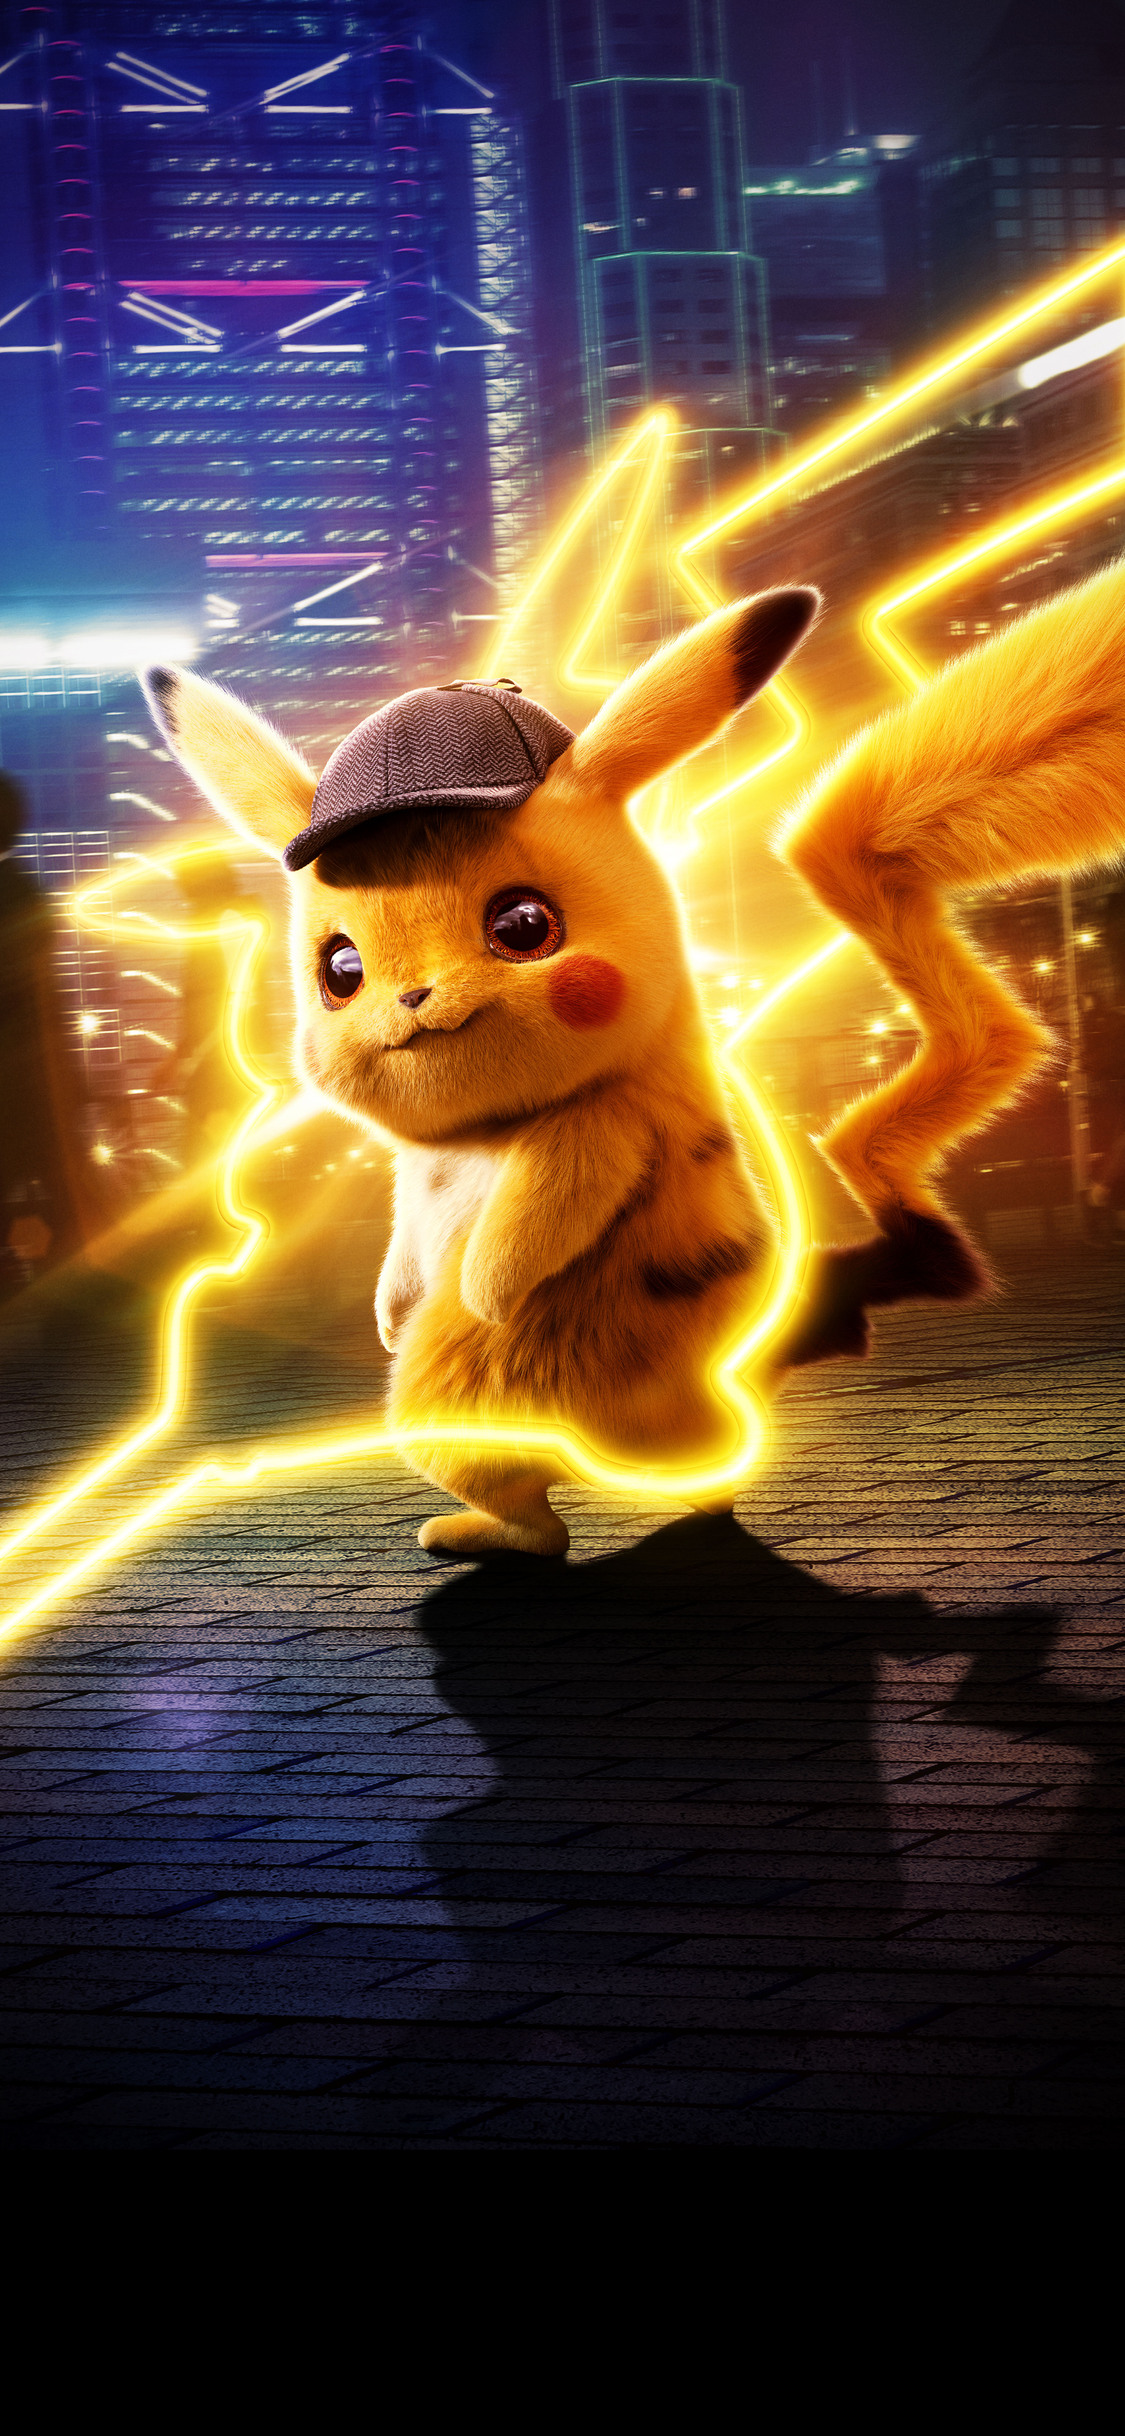 1125x2436 Pokemon Detective Pikachu 5k Iphone Xs Iphone 10